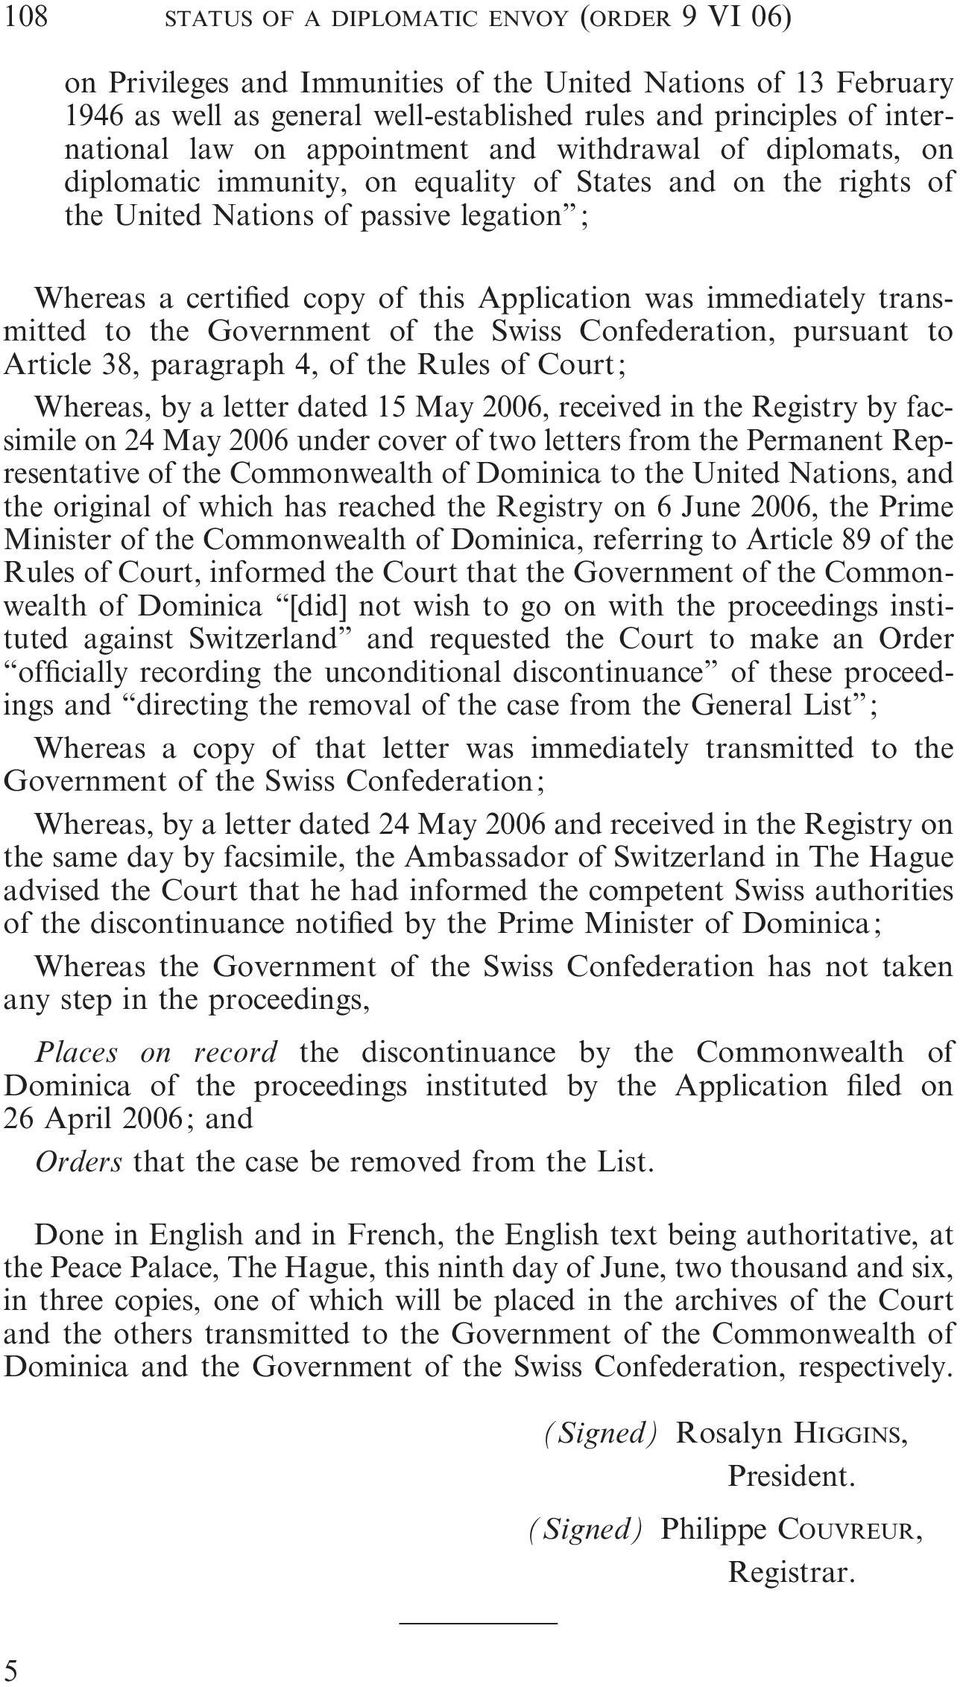 was immediately transmitted to the Government of the Swiss Confederation, pursuant to Article 38, paragraph 4, of the Rules of Court; Whereas, by a letter dated 15 May 2006, received in the Registry